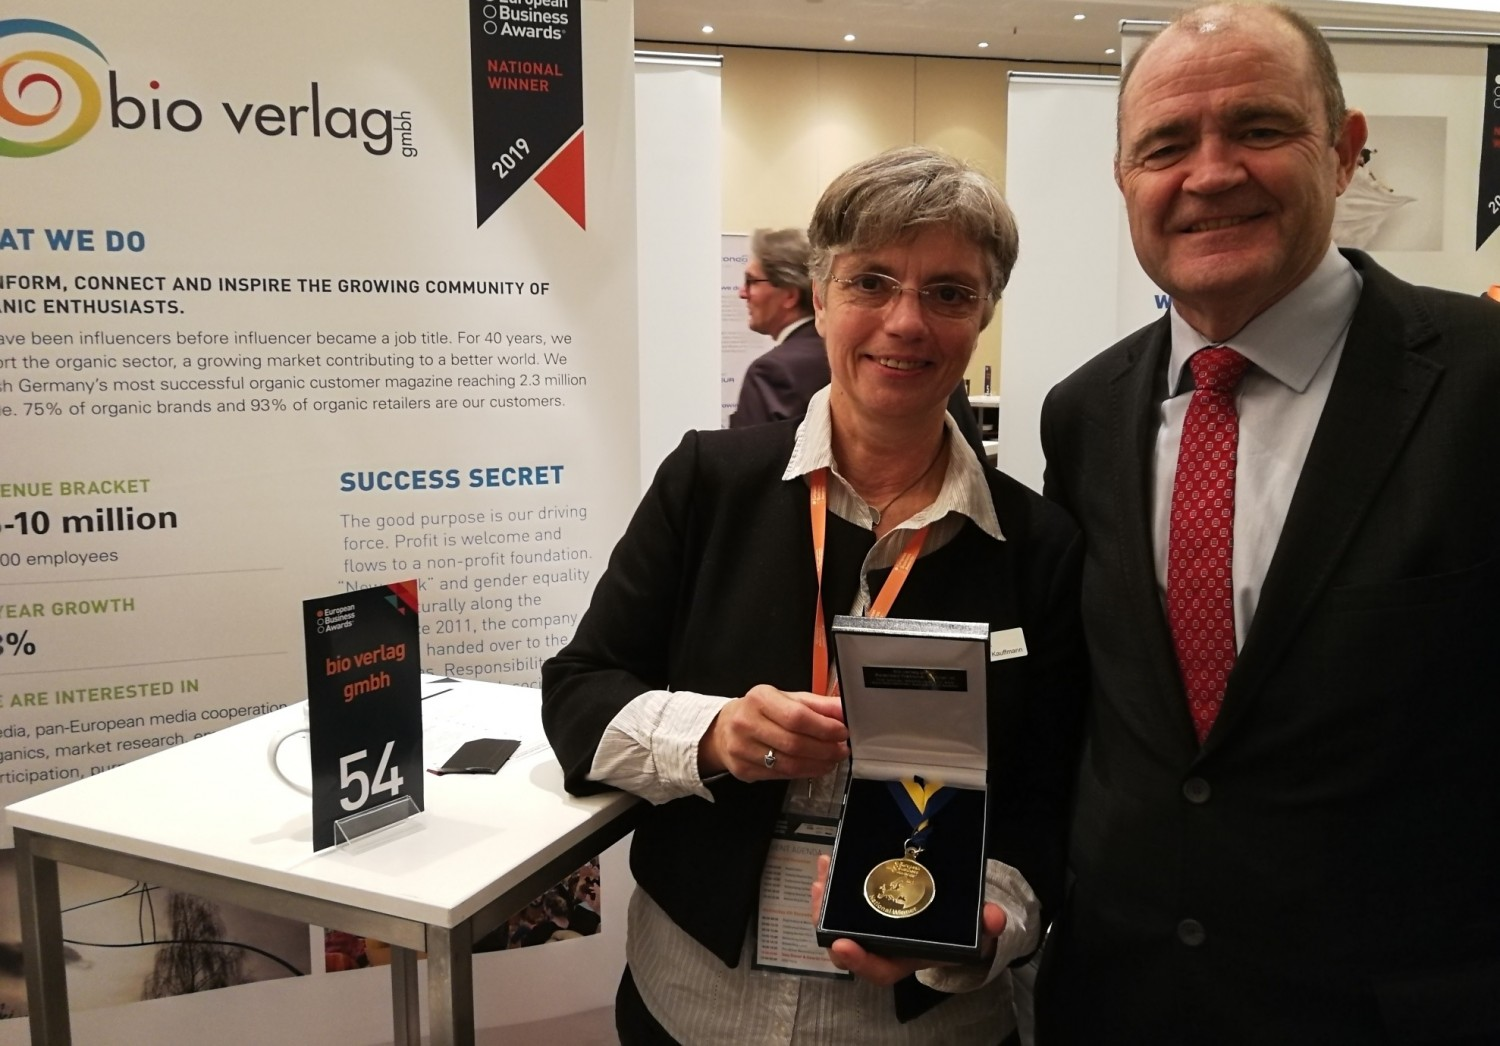 "Sabine Kauffmann, manager of bio verlag, was presented with the ""National Winner"" award by Tony Kely, Chairman of the Jury, at the awards ceremony in Warsaw."